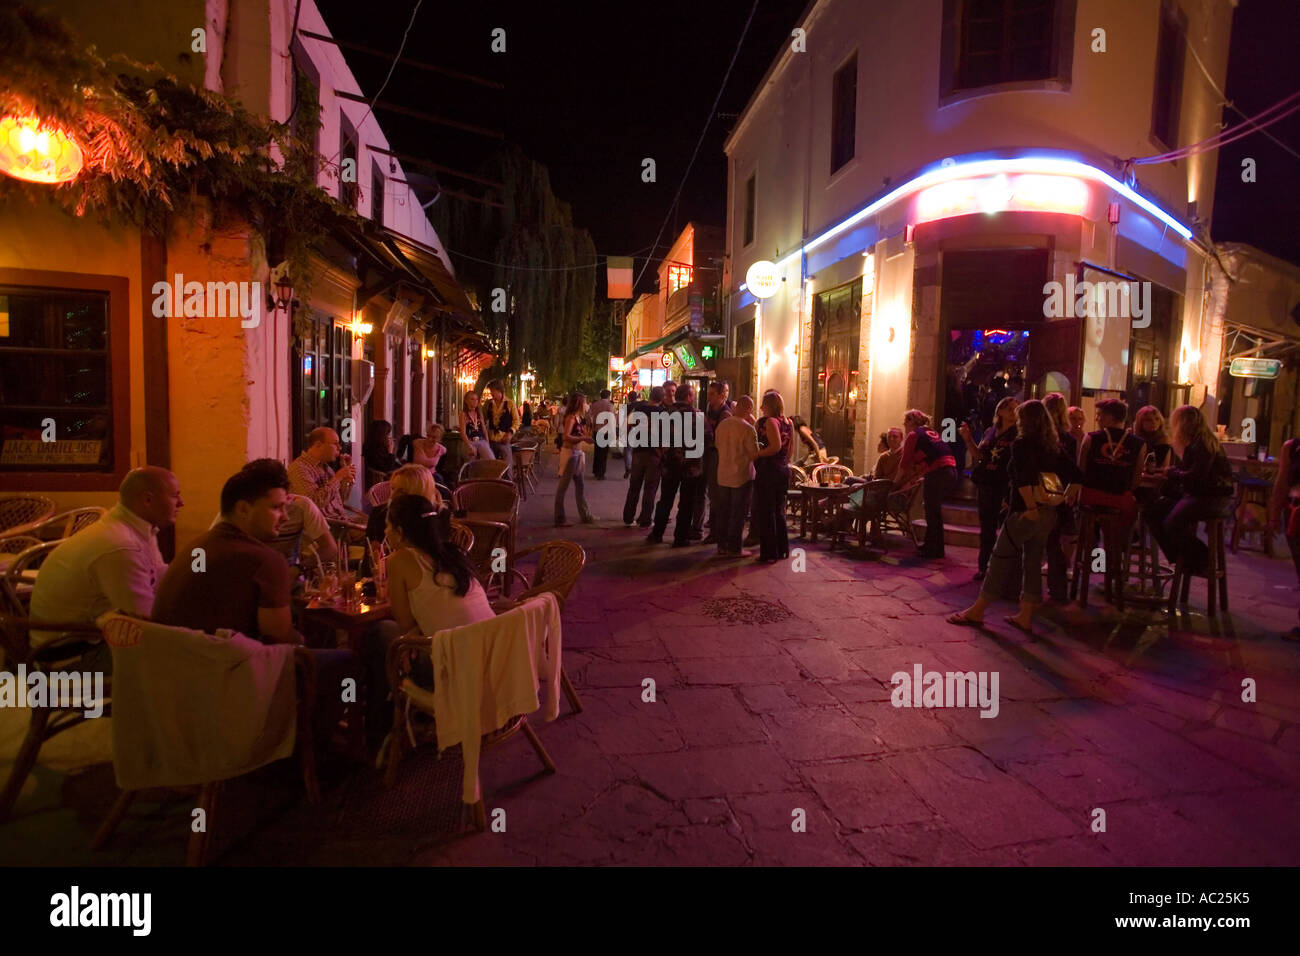 Gallery images and information kos greece nightlife - View Inside Busy Bar Street With A Lof Of Cafes And Bars At Night Kos Town